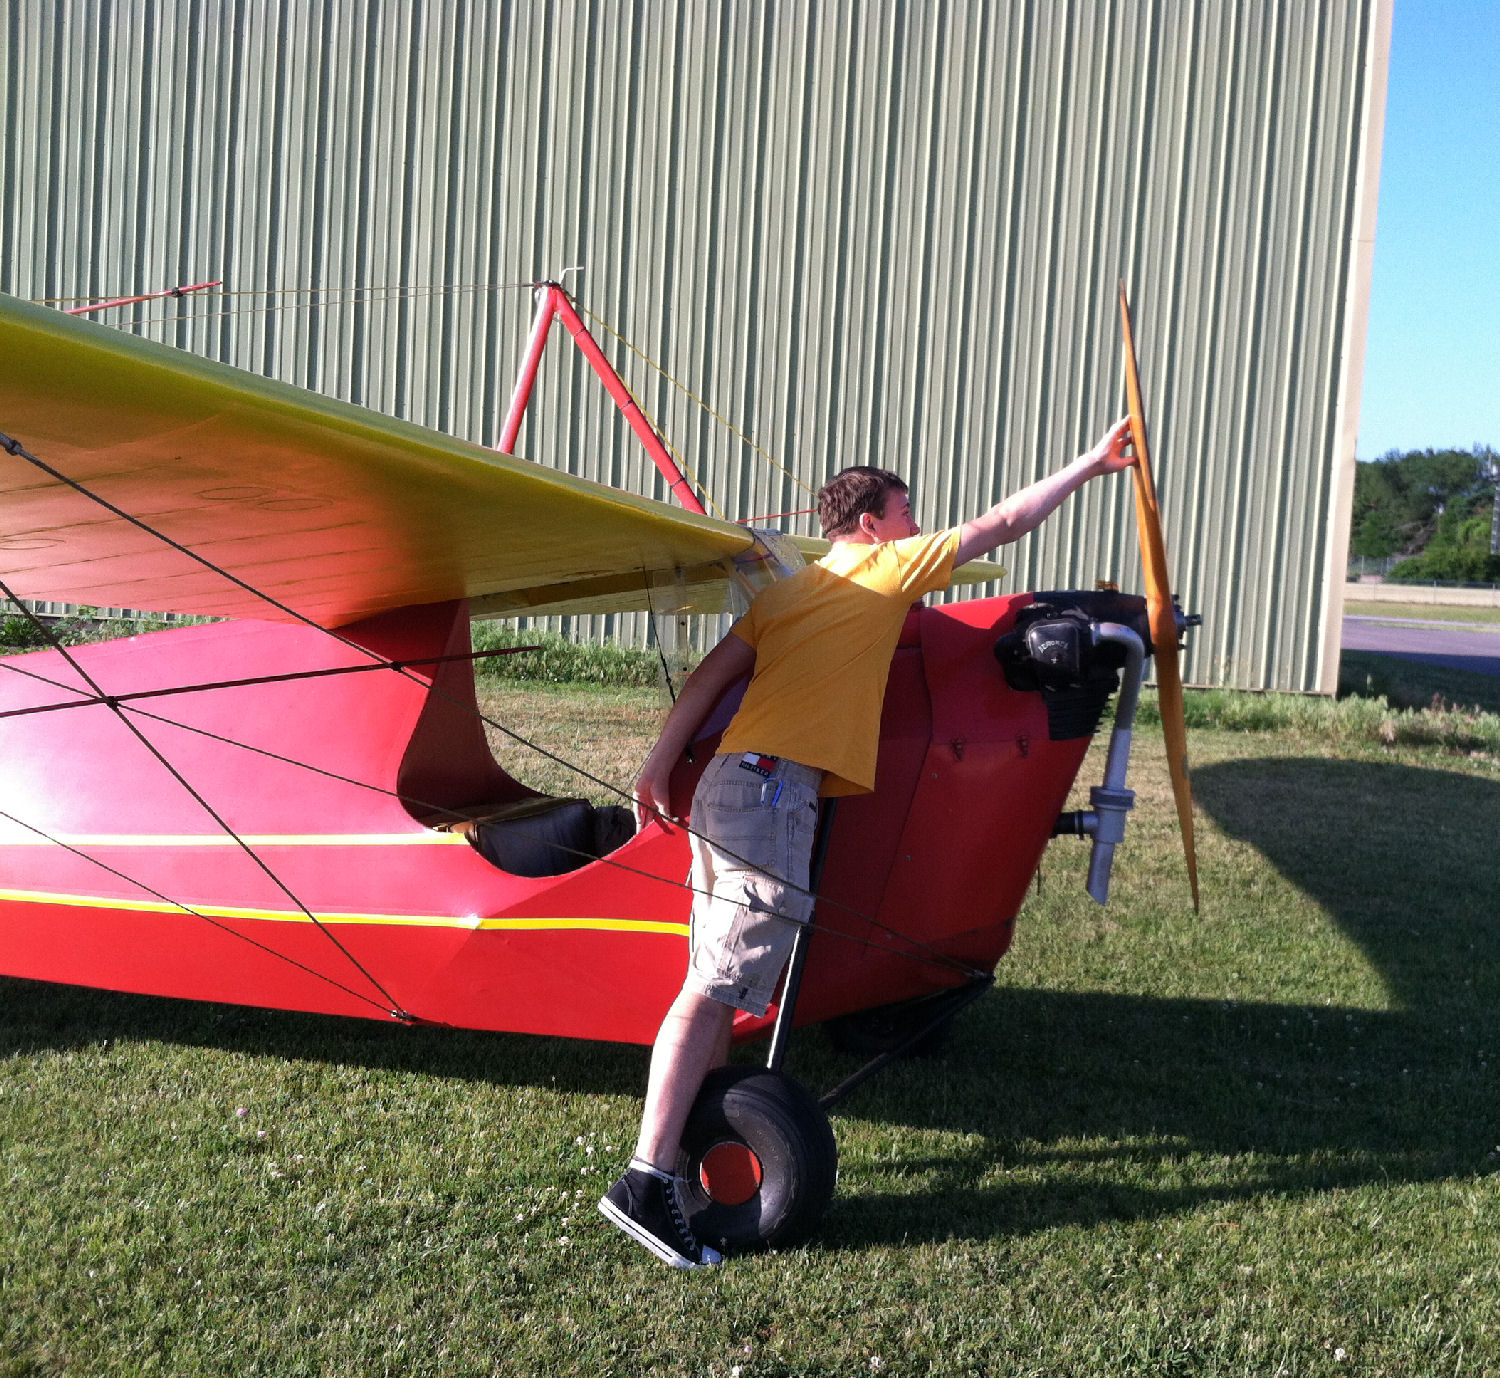 Lucky lad gets to solo his family's Aeronca C3